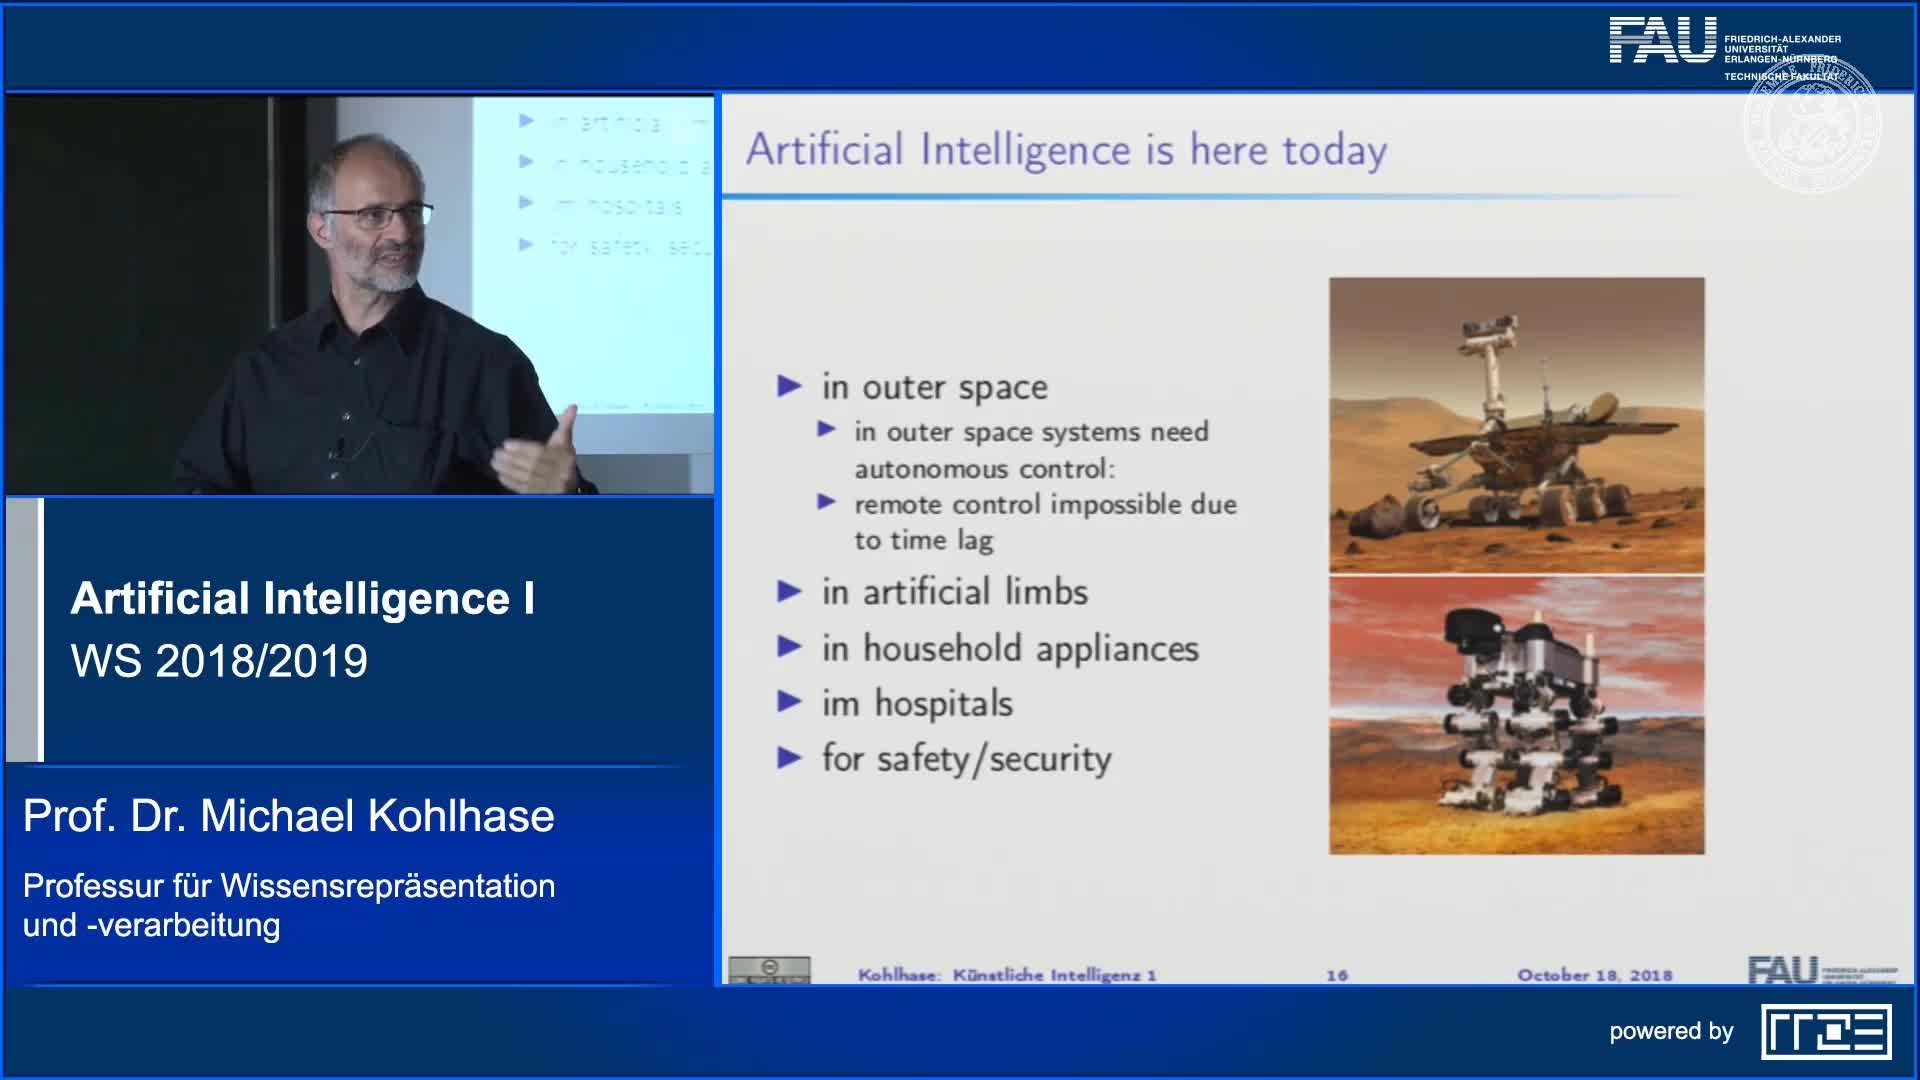 Artificial Intelligence is here today preview image